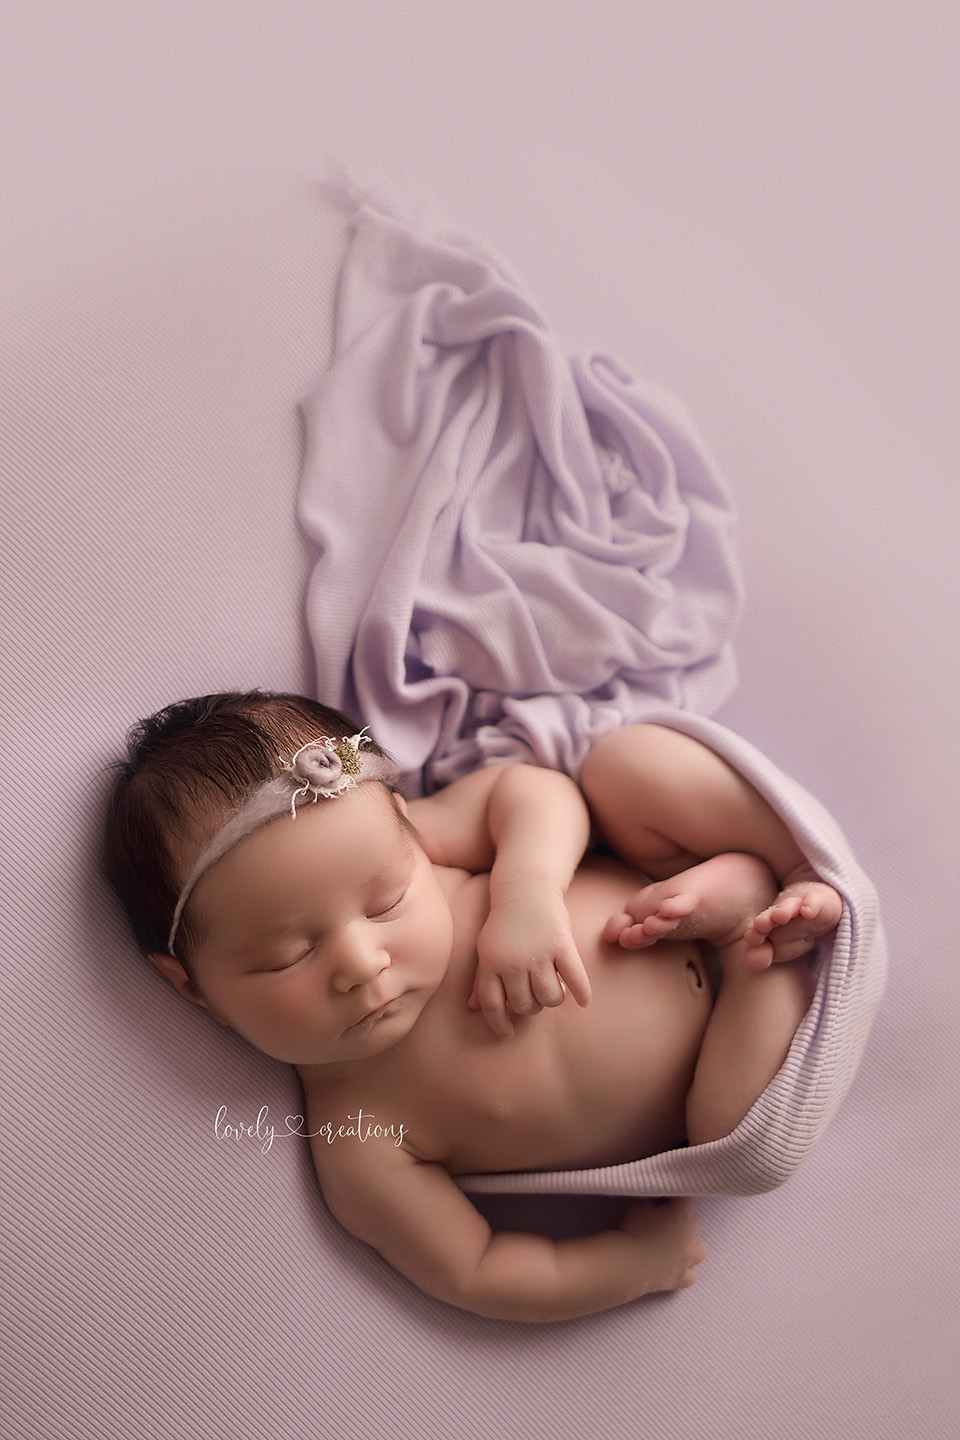 northbaynewbornphotographer26.jpg